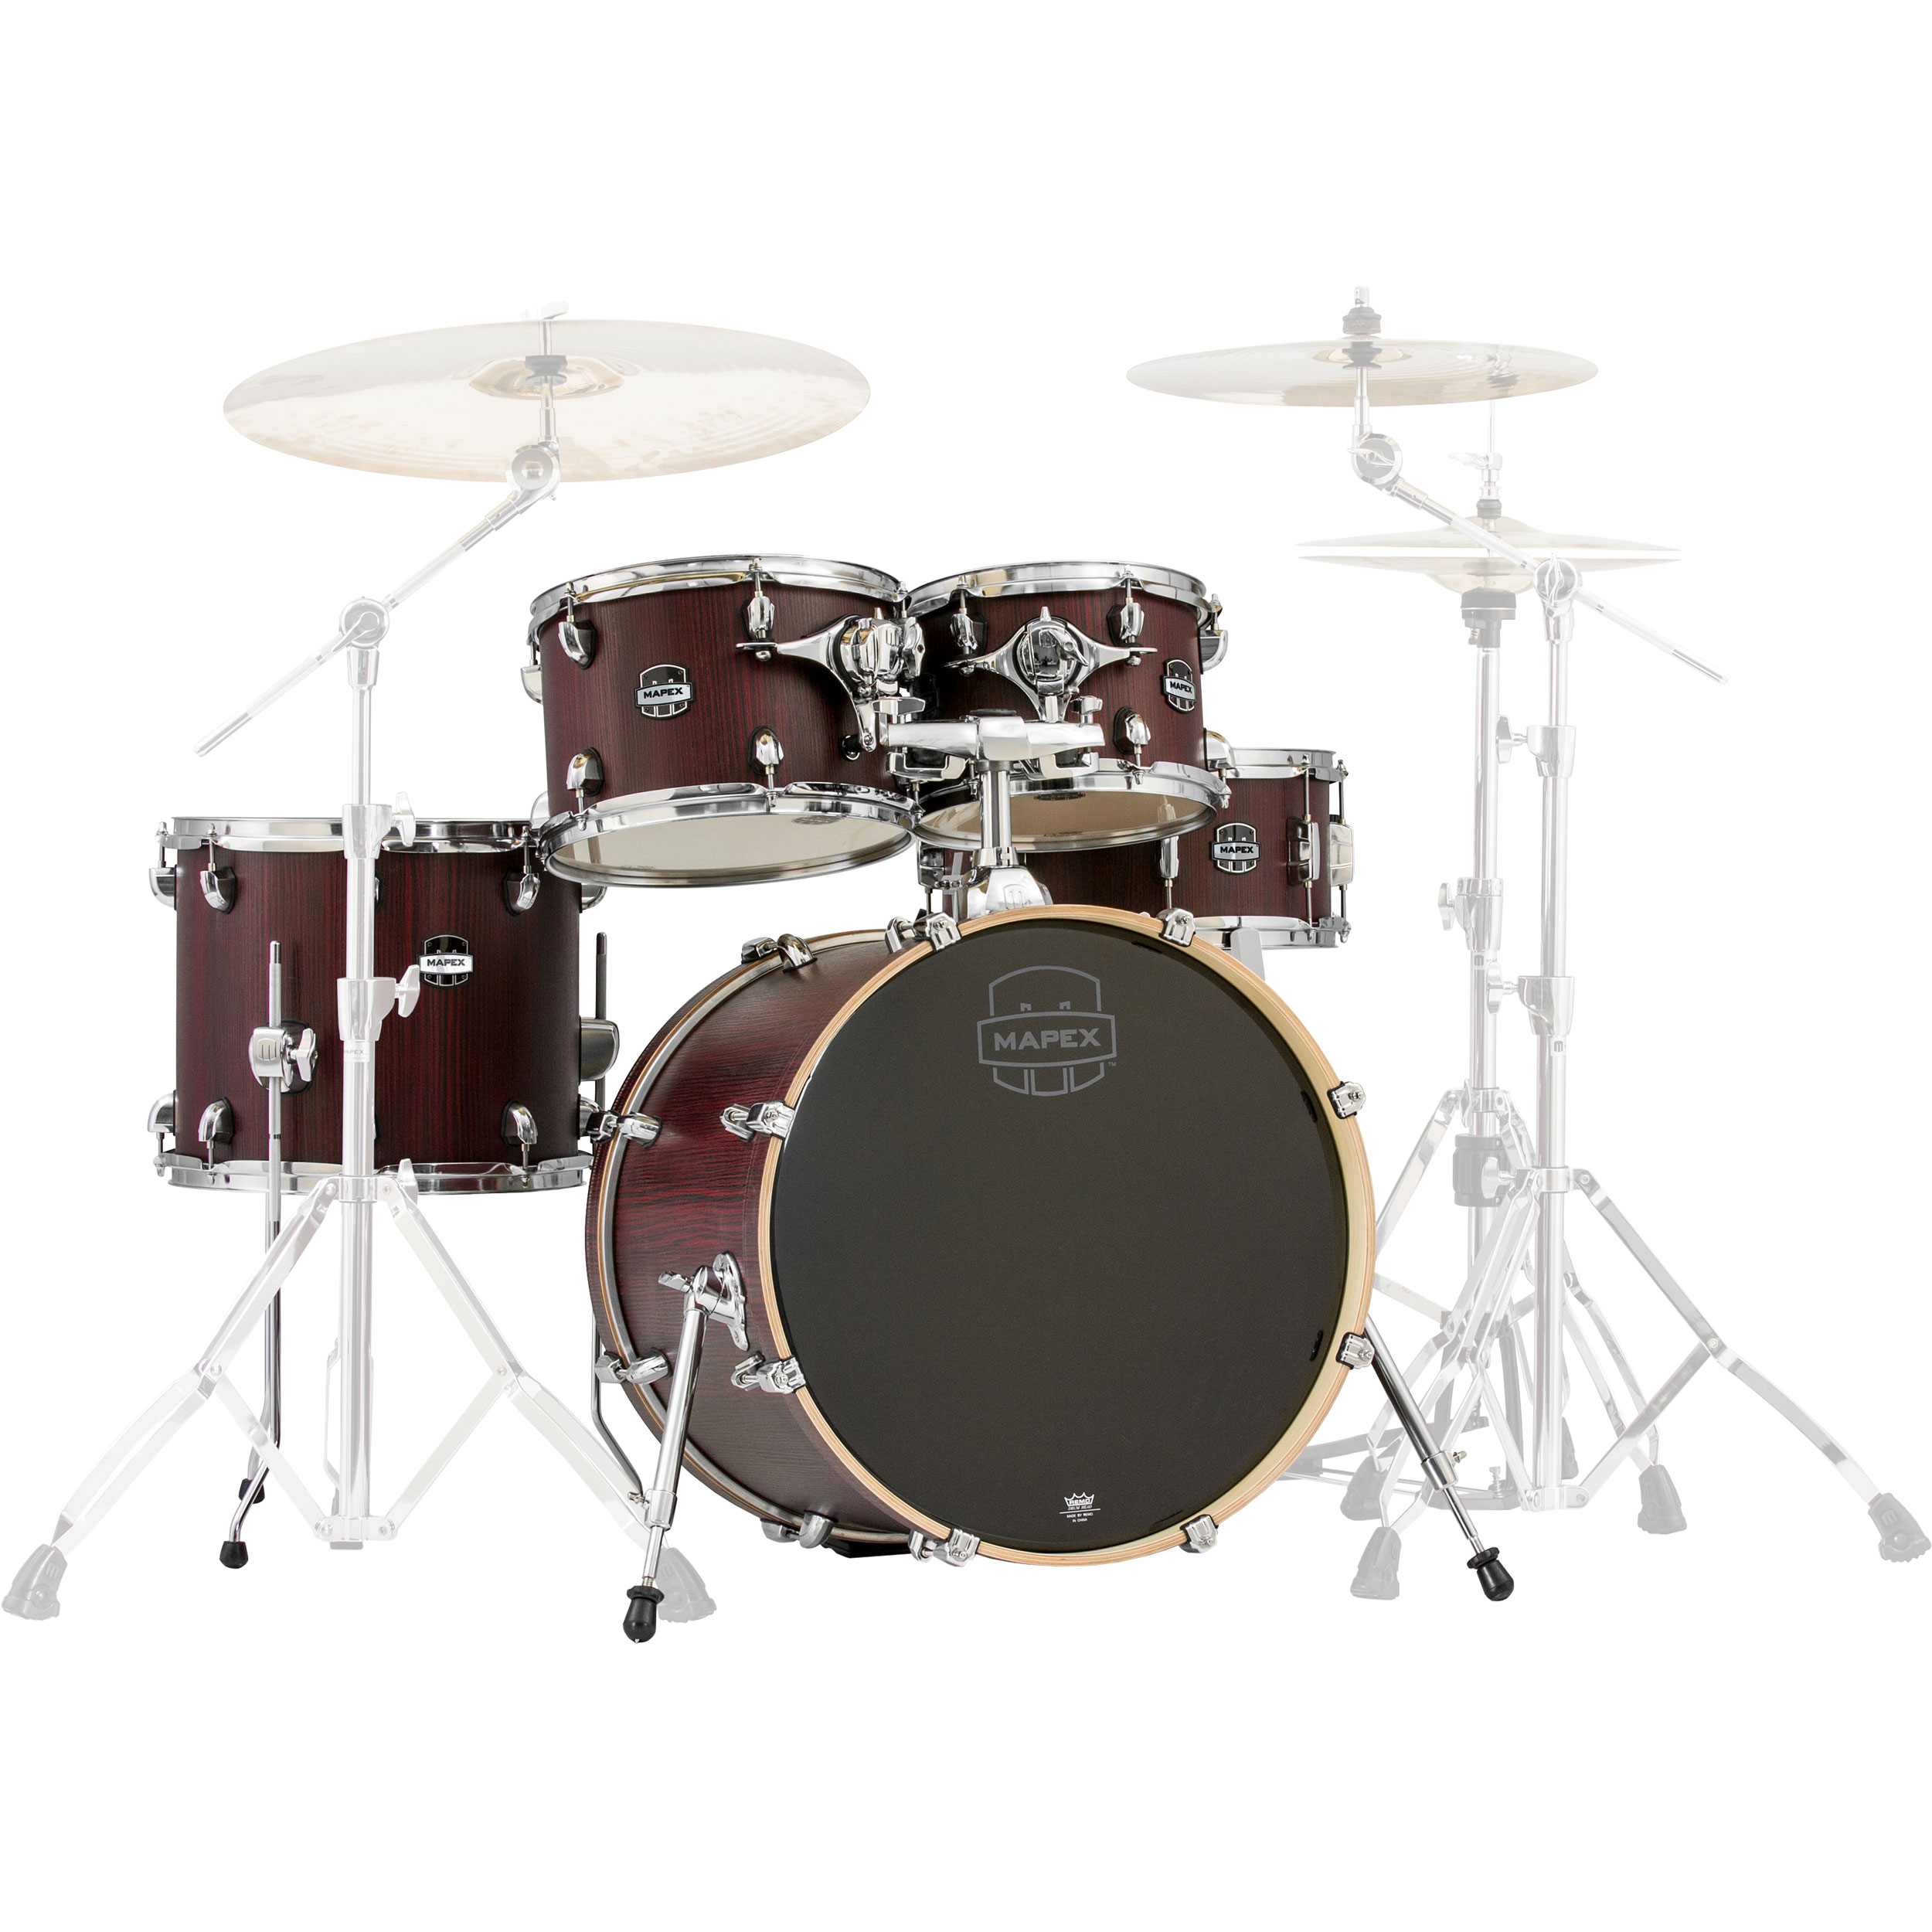 "Mapex Mars 5-Piece Fusion Drum Set Shell Pack (20"" Bass, 10/12/14"" Toms, 14"" Snare) in Bloodwood (Used)"